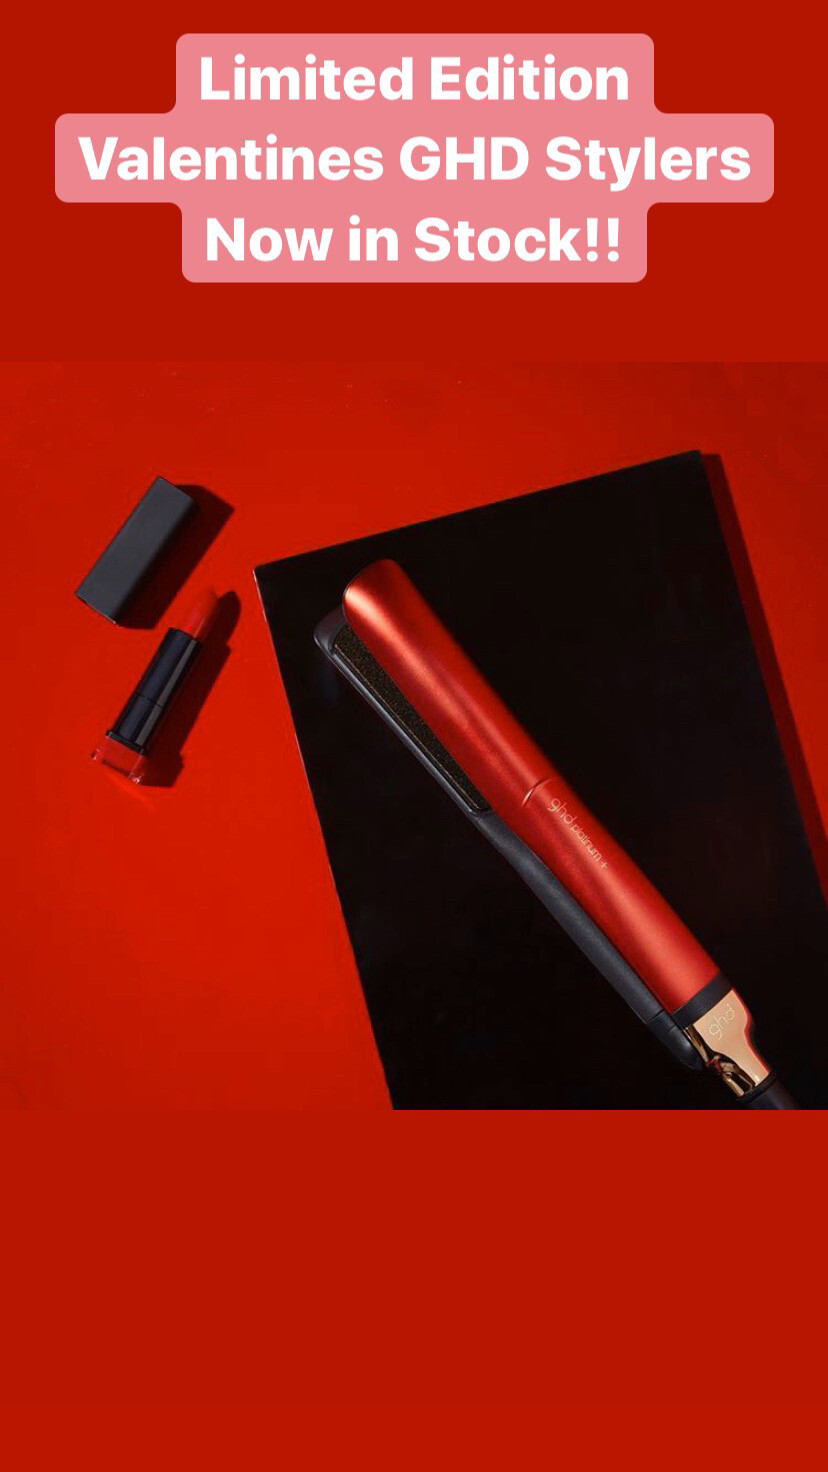 Valentines Day Limited Edition GHD Styler